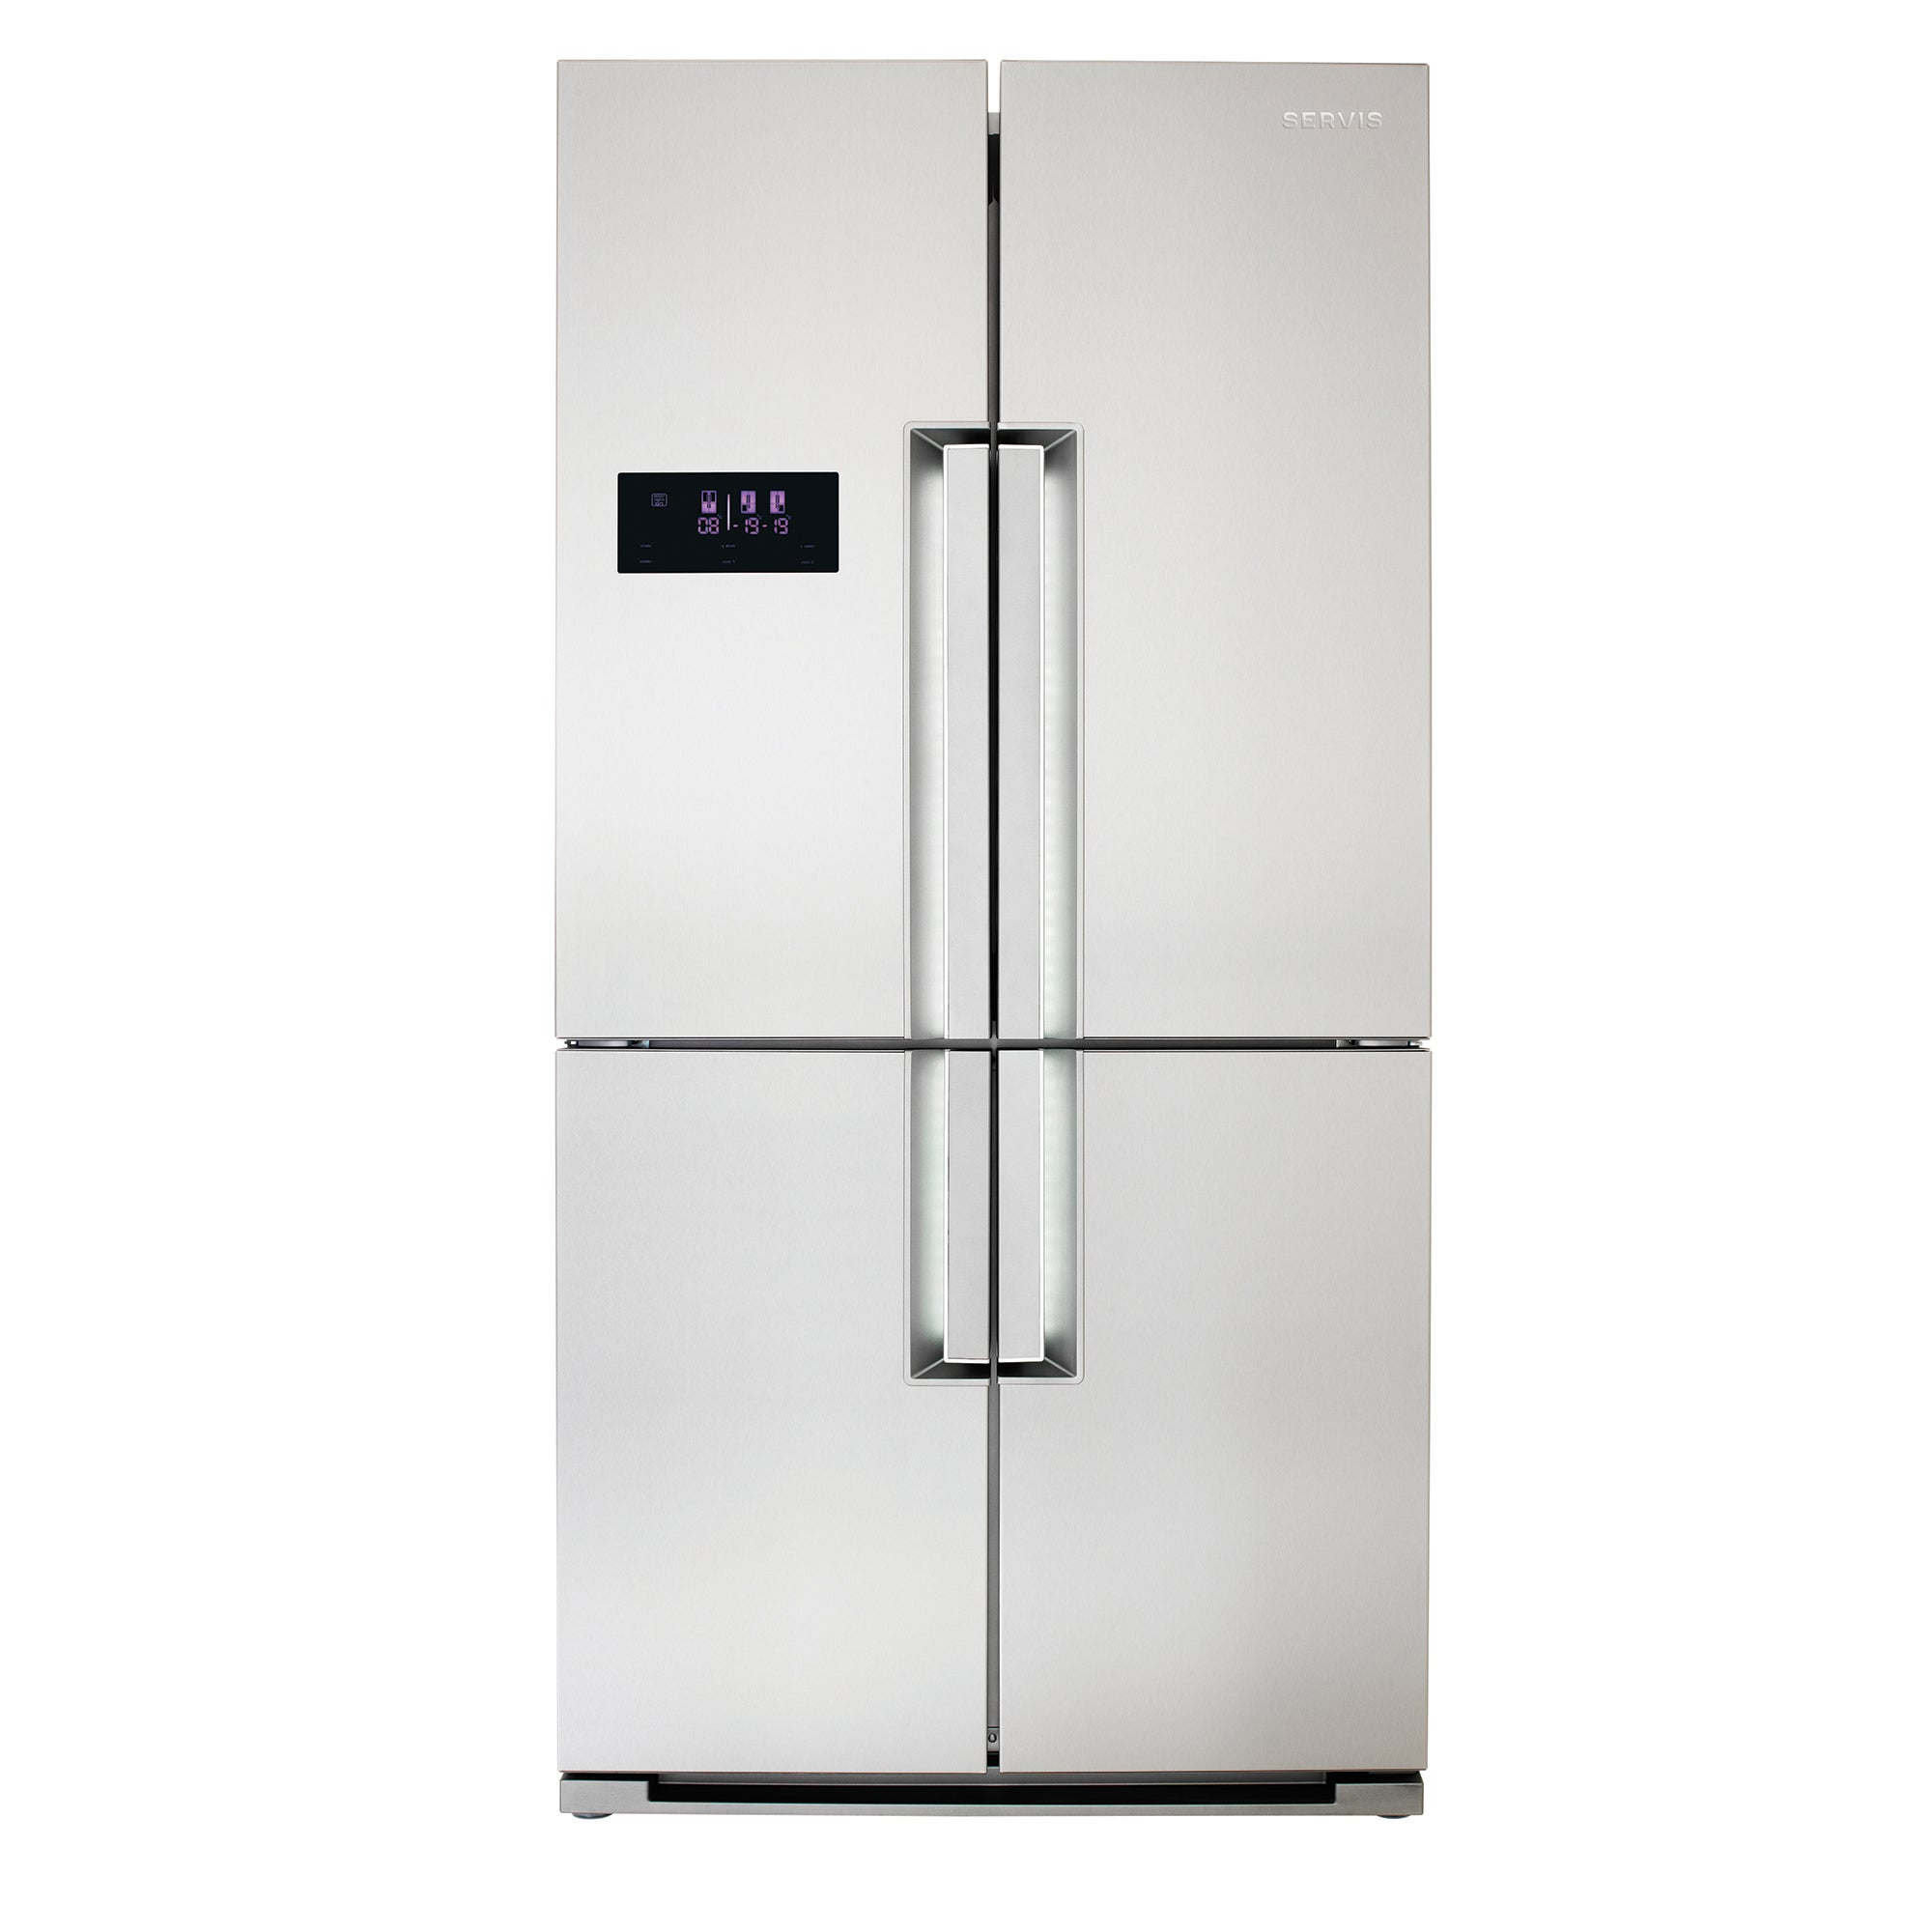 Servis FD91185SS 4 Door American Style Fridge Freezer Stainless Steel